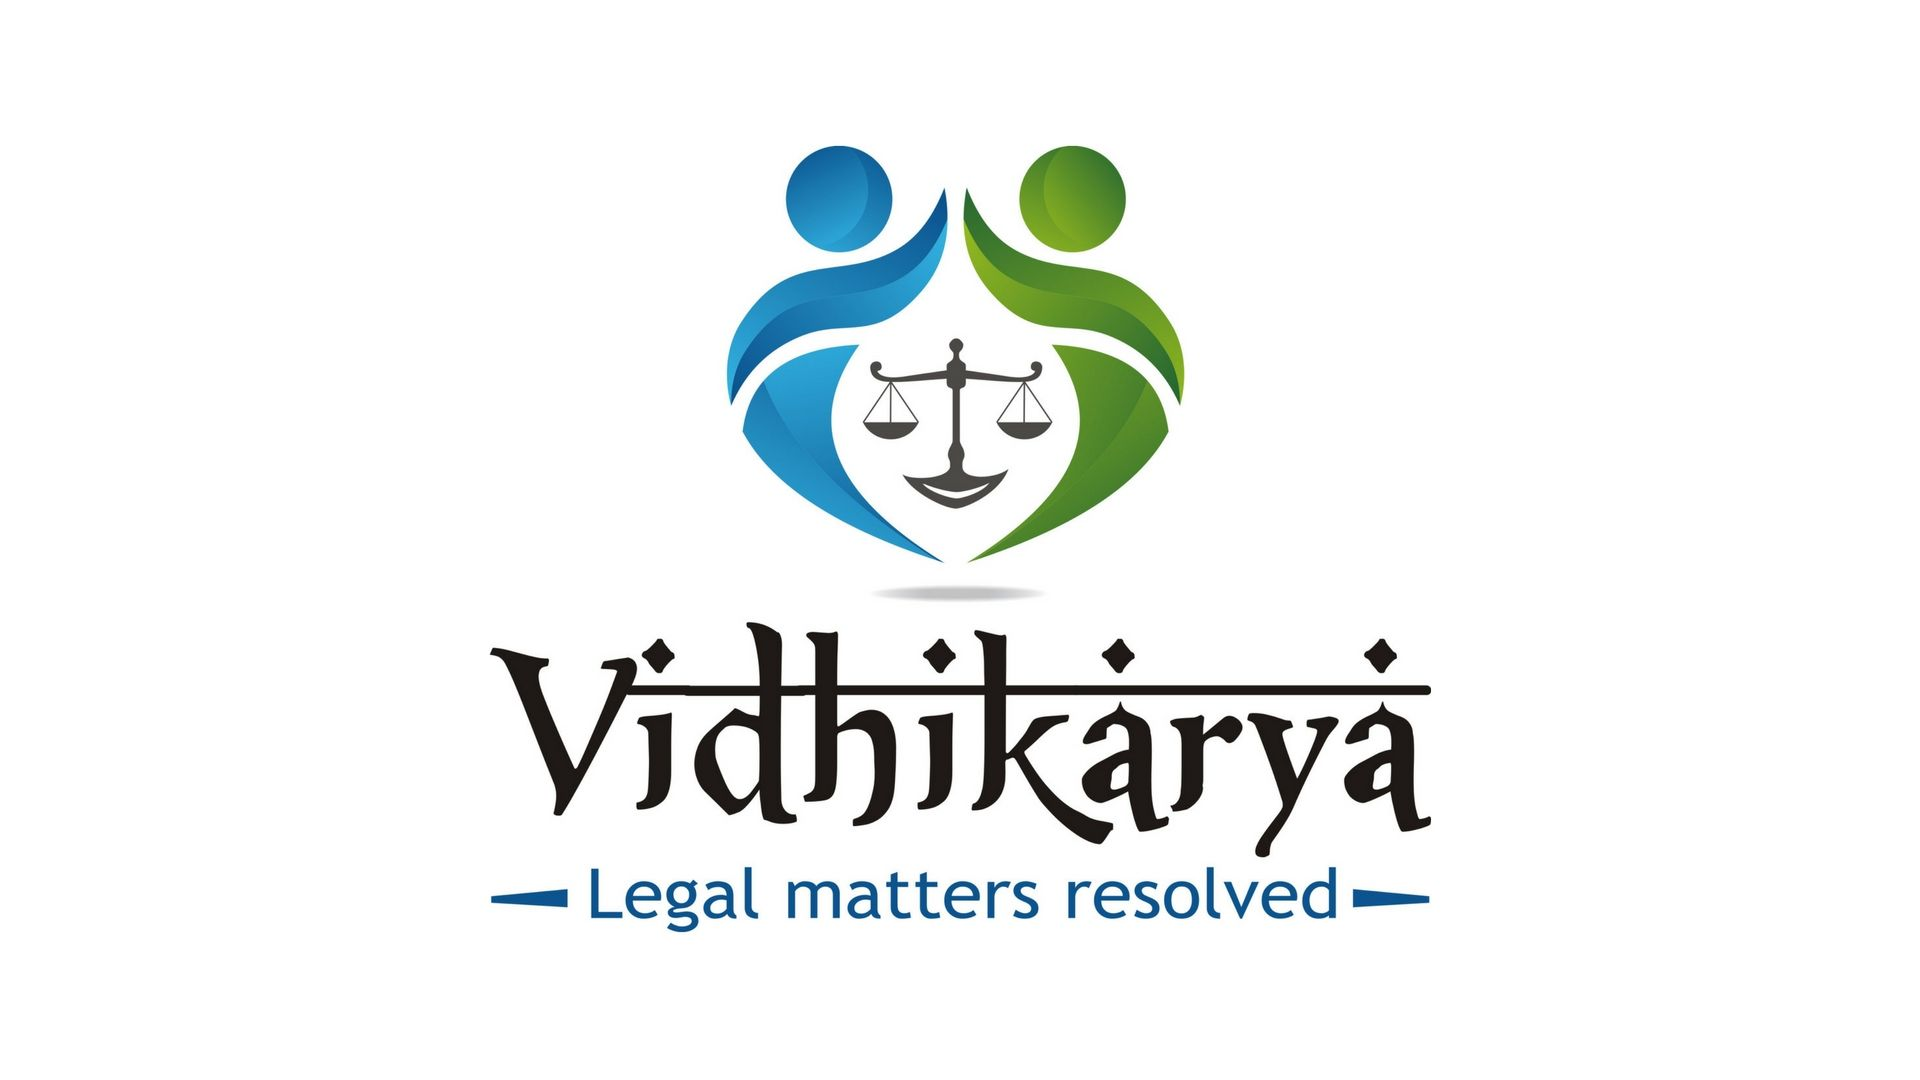 Get legal advice and services online with ease from